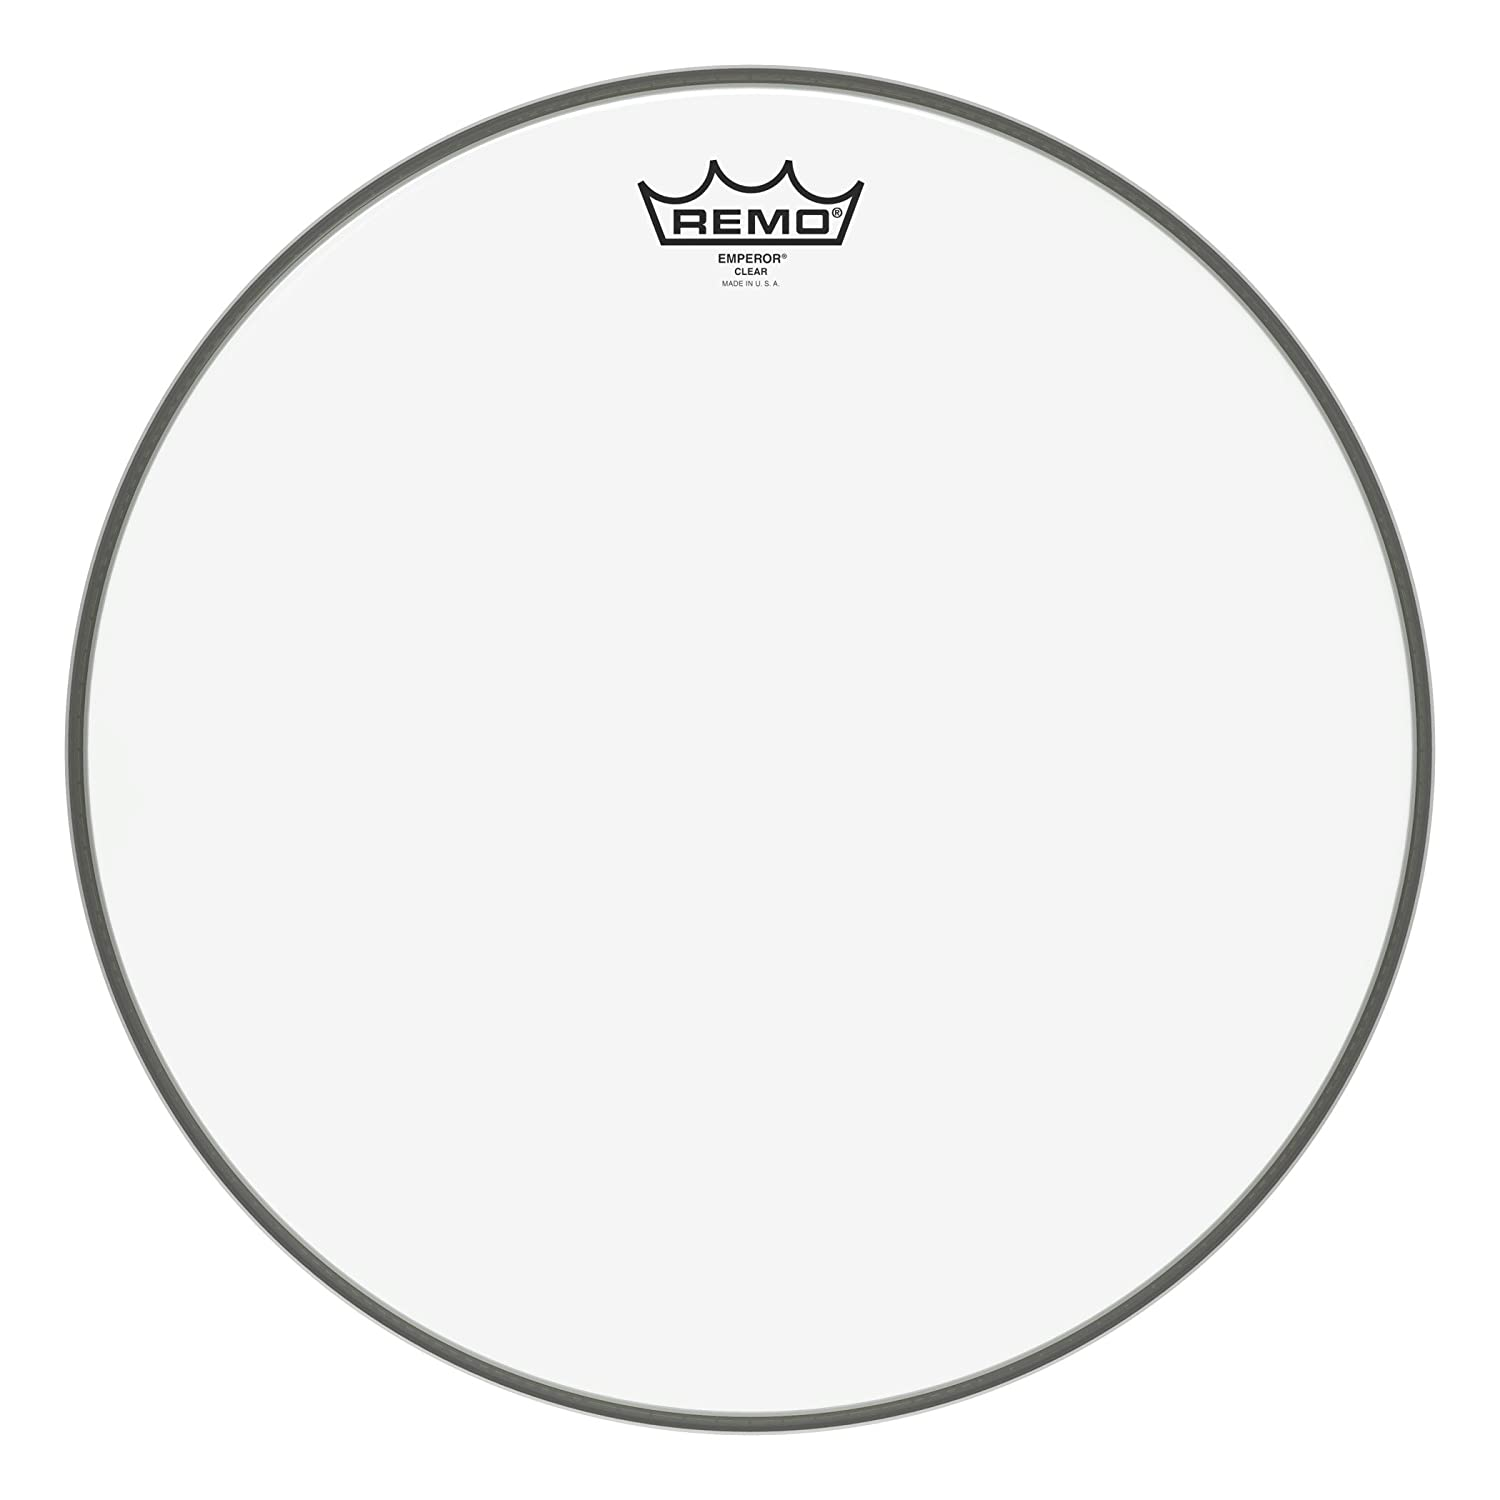 "Remo Drum Set, 15"" (BE-0315-00) 71IVB20SJbL"